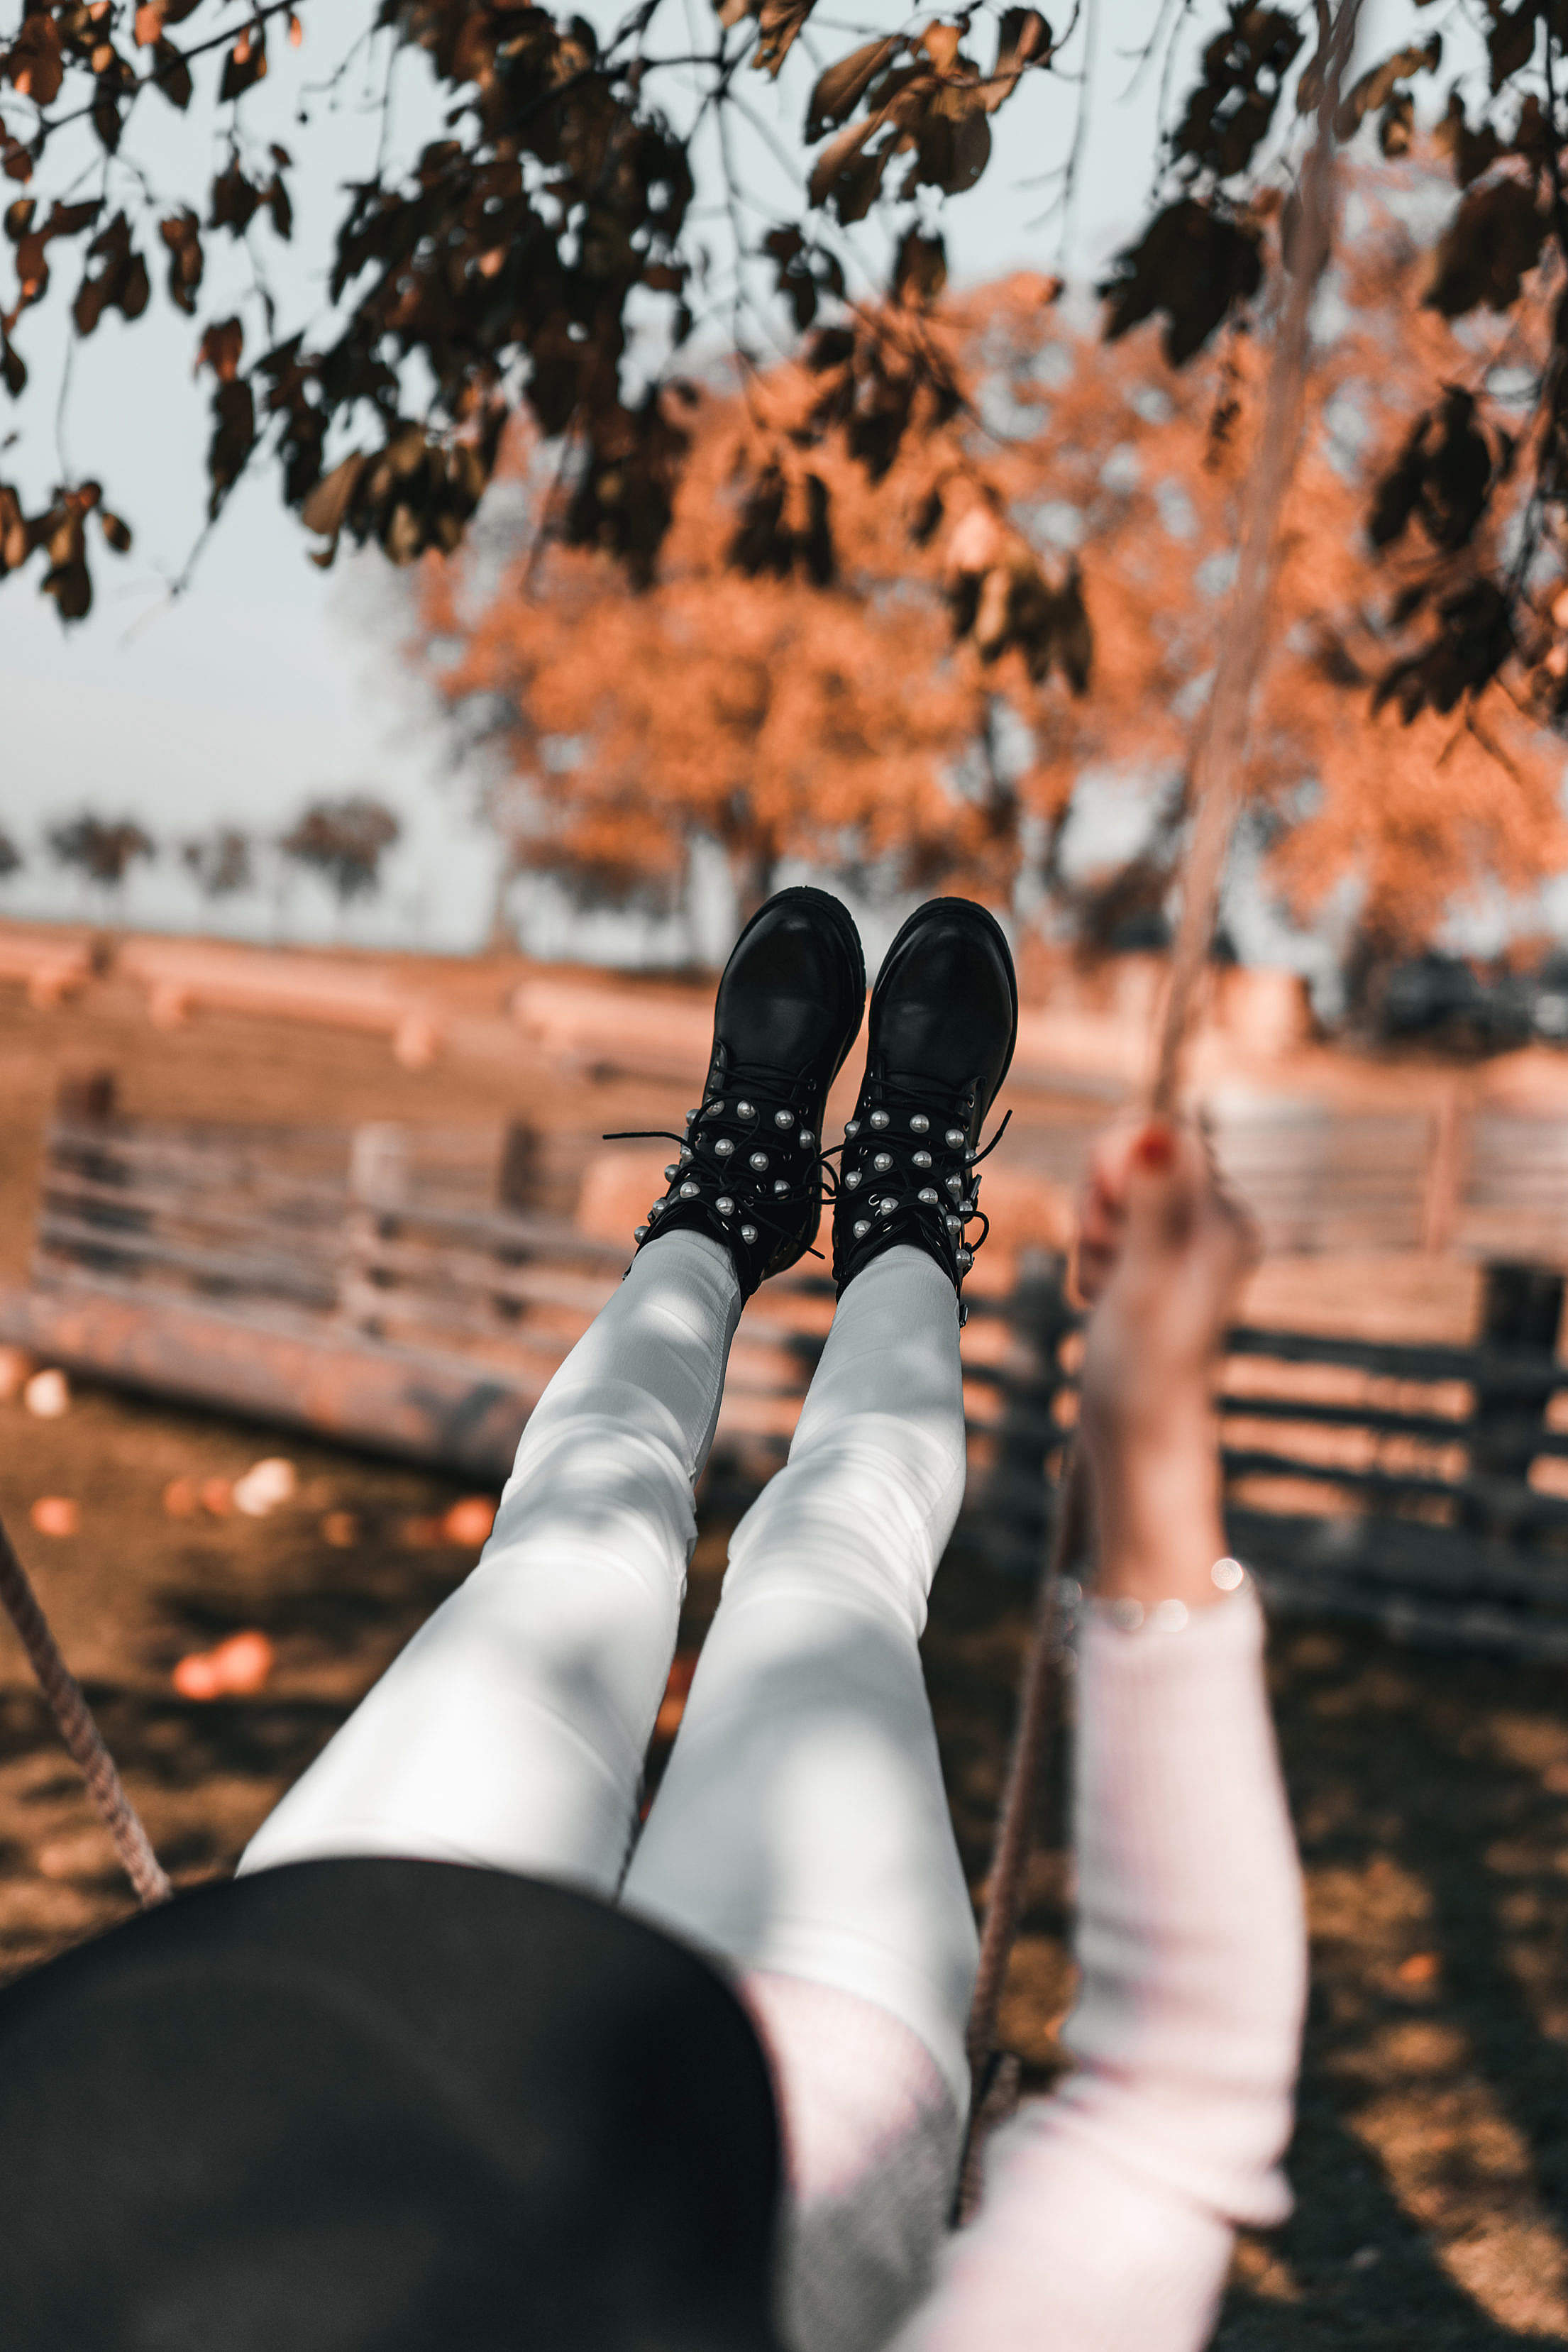 Woman on a Swing in an Autumn Nature Free Stock Photo